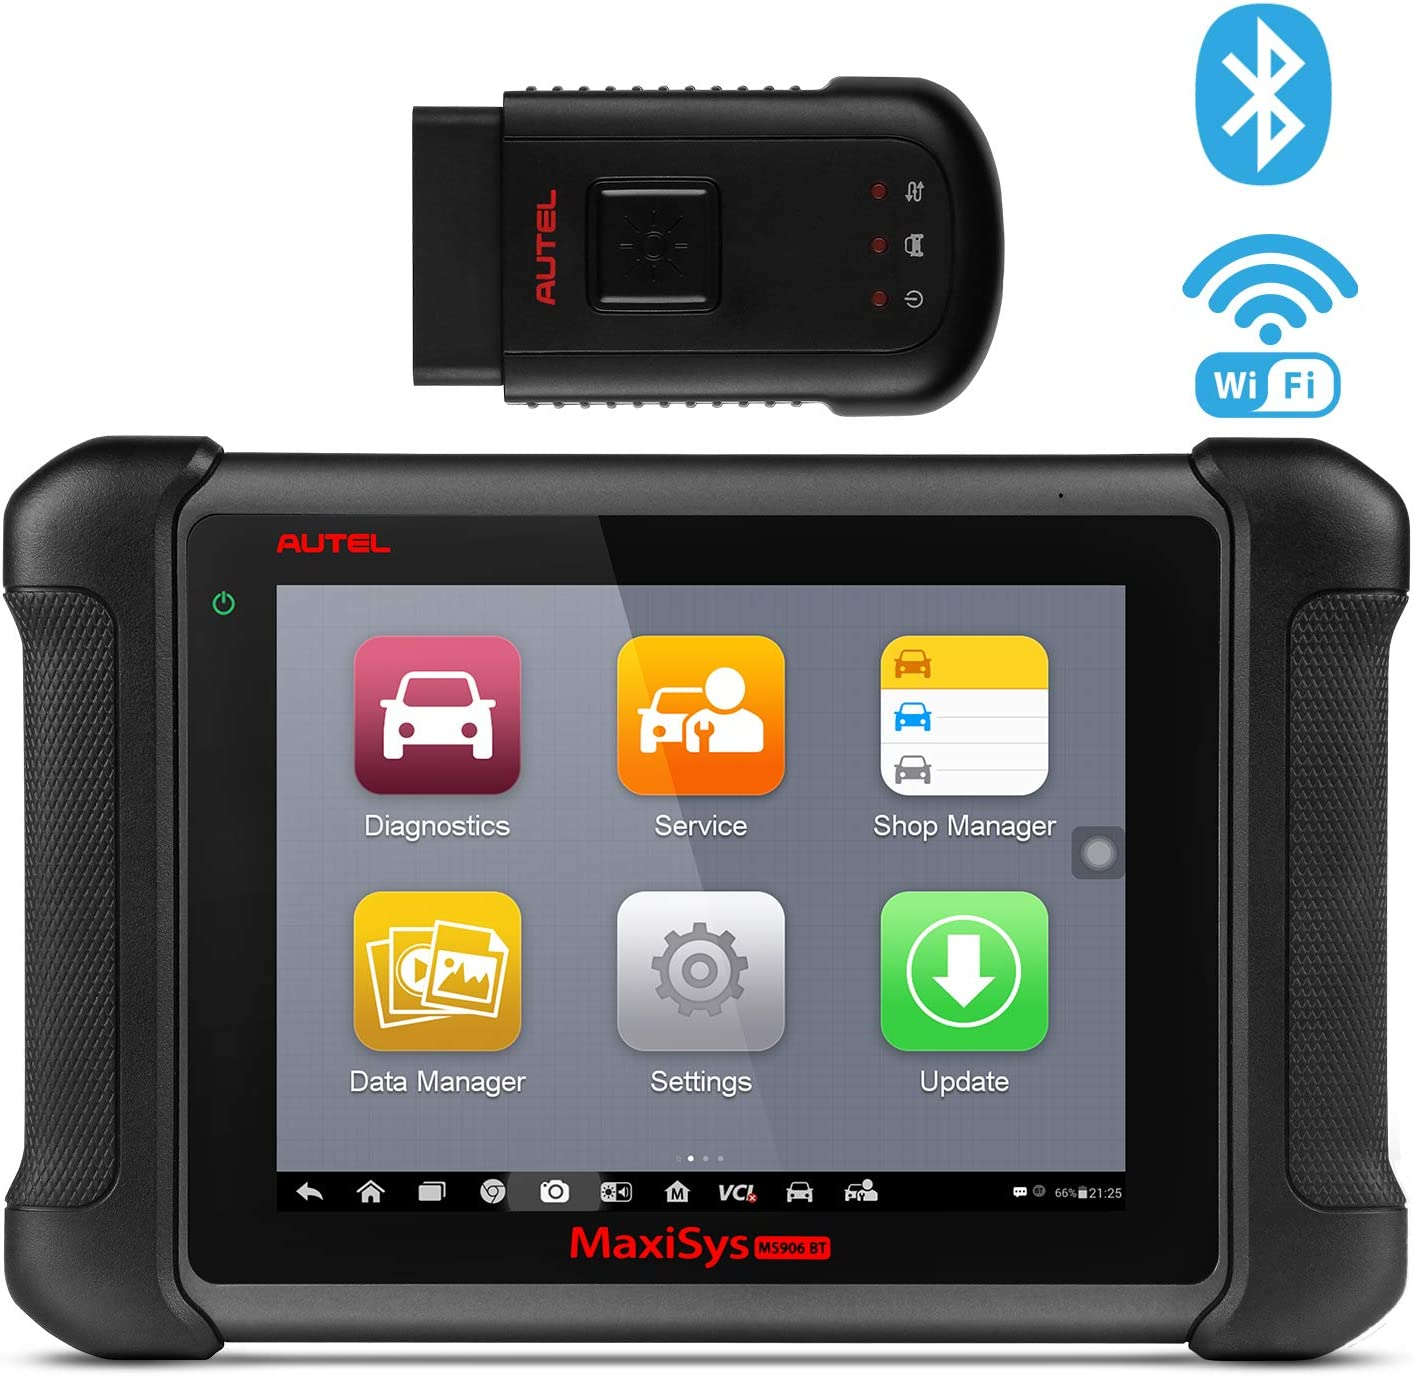 Automotive Scan Tool >> Autel Maxisys Ms906bt Bluetooth Automotive Scan Tool Diagnostic Scanner With Ecu Coding Key Coding Bi Directional Control Oil Reset Abs Srs Dpf